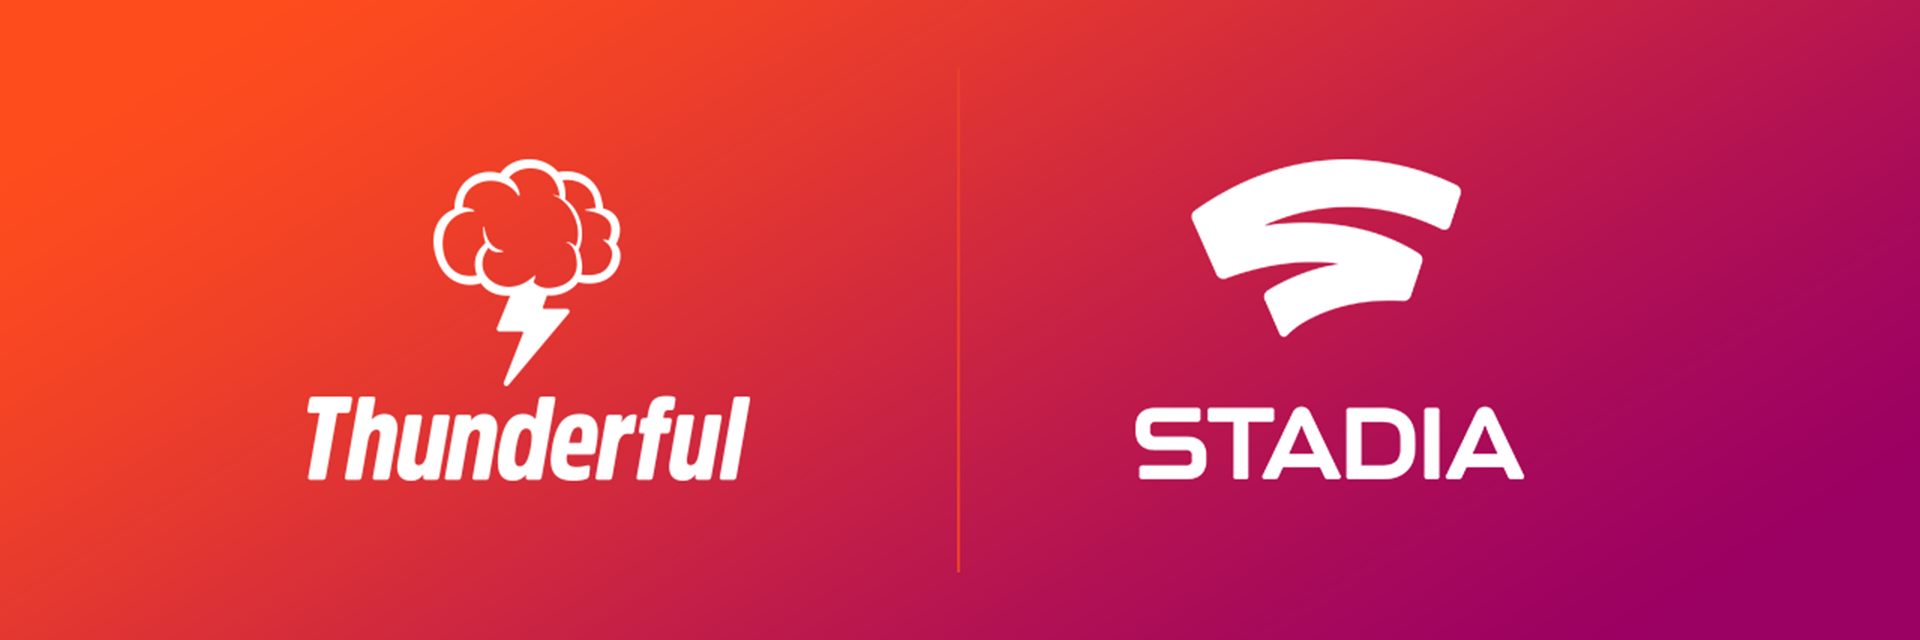 Stadia Partners with Thunderful Games Image